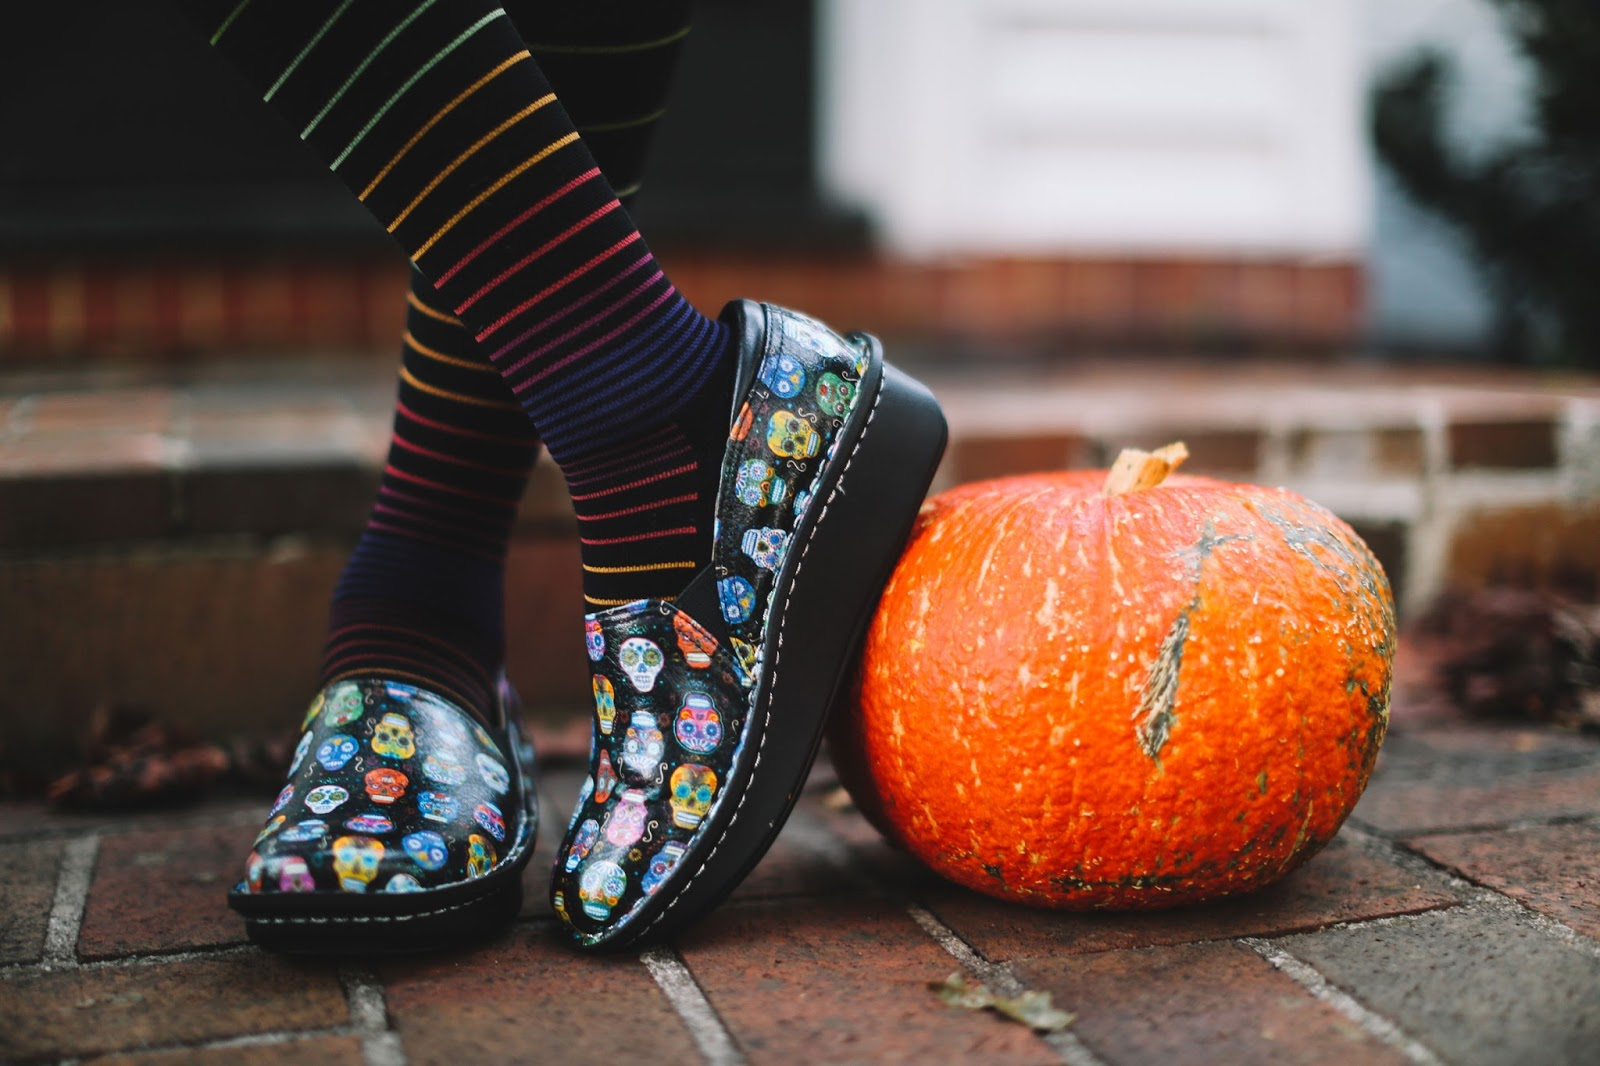 As cute as they are spooky the Debra Sugar Skulls was our best selling shoe of Fall 2015. Bright colors, playful accents, and toothy grins adorn the loafer in a way that reminds us of October's fall harvest festivities. Sugar skulls are all over the place in Western culture adorning everything from rolling pins to bracelets to area rugs to S'well water bottles. As you slip into your Sockwells and don your Debras in Fall 2016, we invite you to reflect on the origins of this seasonal skull.  Skeletons are an iconic part of Dia de los Muertos, a Mexican celebration of the Day of the Dead. The three-day long fiesta begins on October 31st and ending on November 2nd. On these days, people believe that honoring late friends, family, and neighbors will bring future happiness to the living the following year.  In preparation for this homecoming, the families craft altars in their homes and cemeteries decorating them with the favorite foods, drinks, and gifts of the dearly departed. People place sugar skulls on the altars along with marigolds and pan de muerto. One of the most famous of the skeletal characters to make an appearance for the festivities is La Catrina. The creation of Antonio Vanegas Arroyo, she is an elegantly dressed figure wearing a French-inspired hat. Intended to make a political statement in pre-Revolutionary Mexico she represents wealth and serves as a reminder that death is the one true equalizer between classes.  The calaveritas de azucar are a combination of sugar, water, and meringue powder you press into a skull mold. Decorated with bright icings, marigolds, foil, and even the name of the deceased these skulls are meant to be colorful- a representation and celebration of the living. Mexicans see this vibrant pigment as a sweet reminder of the inevitability of the afterlife.  In contrast to Halloween, when people fear and evade death at all costs, Dia de los Muertos is intended to be a celebration and the Mexican attitude toward death itself is reflected in the playful and celebratory papier mache parades that flood the streets of Mexico City. Attendees paint their faces to joyfully dance on the line between life and death before heading to late night candle light vigils in cemeteries.  How can you get in the mood for this celebration of all things Day of the Dead? Your favorite Alegrias are a good start, but we want to sweeten the deal with a gift with purchase to keep your feet comfy and warm while you attend your favorite autumn festivities.   That's right! You heard us! We've partnered with Sockwell to give away a free pair with every purchase of a Debra Sugar Skull or Keli PRO Sugar Skull Dottie between now and October 31st.  What's so special about these socks? Made with a merino wool and bamboo blend these socks are meant to be high-performance compression socks while also being visually attractive and physically comfortable. The designers kept the wearer's needs in mind and incorporated two levels of graduated compression. Better yet these socks are all-American in both the materials and mills used in production.  Even if you already have your Alegria Sugar Skull shoes, you'll want to pick up a pair of Sockwell socks for the perfect match in comfort and style.  Hit the leaf-covered streets this October in the most popular pattern of the season with the best socks you've ever worn, and you'll be ready for whatever tricks and treats come your way. Happy Harvest!